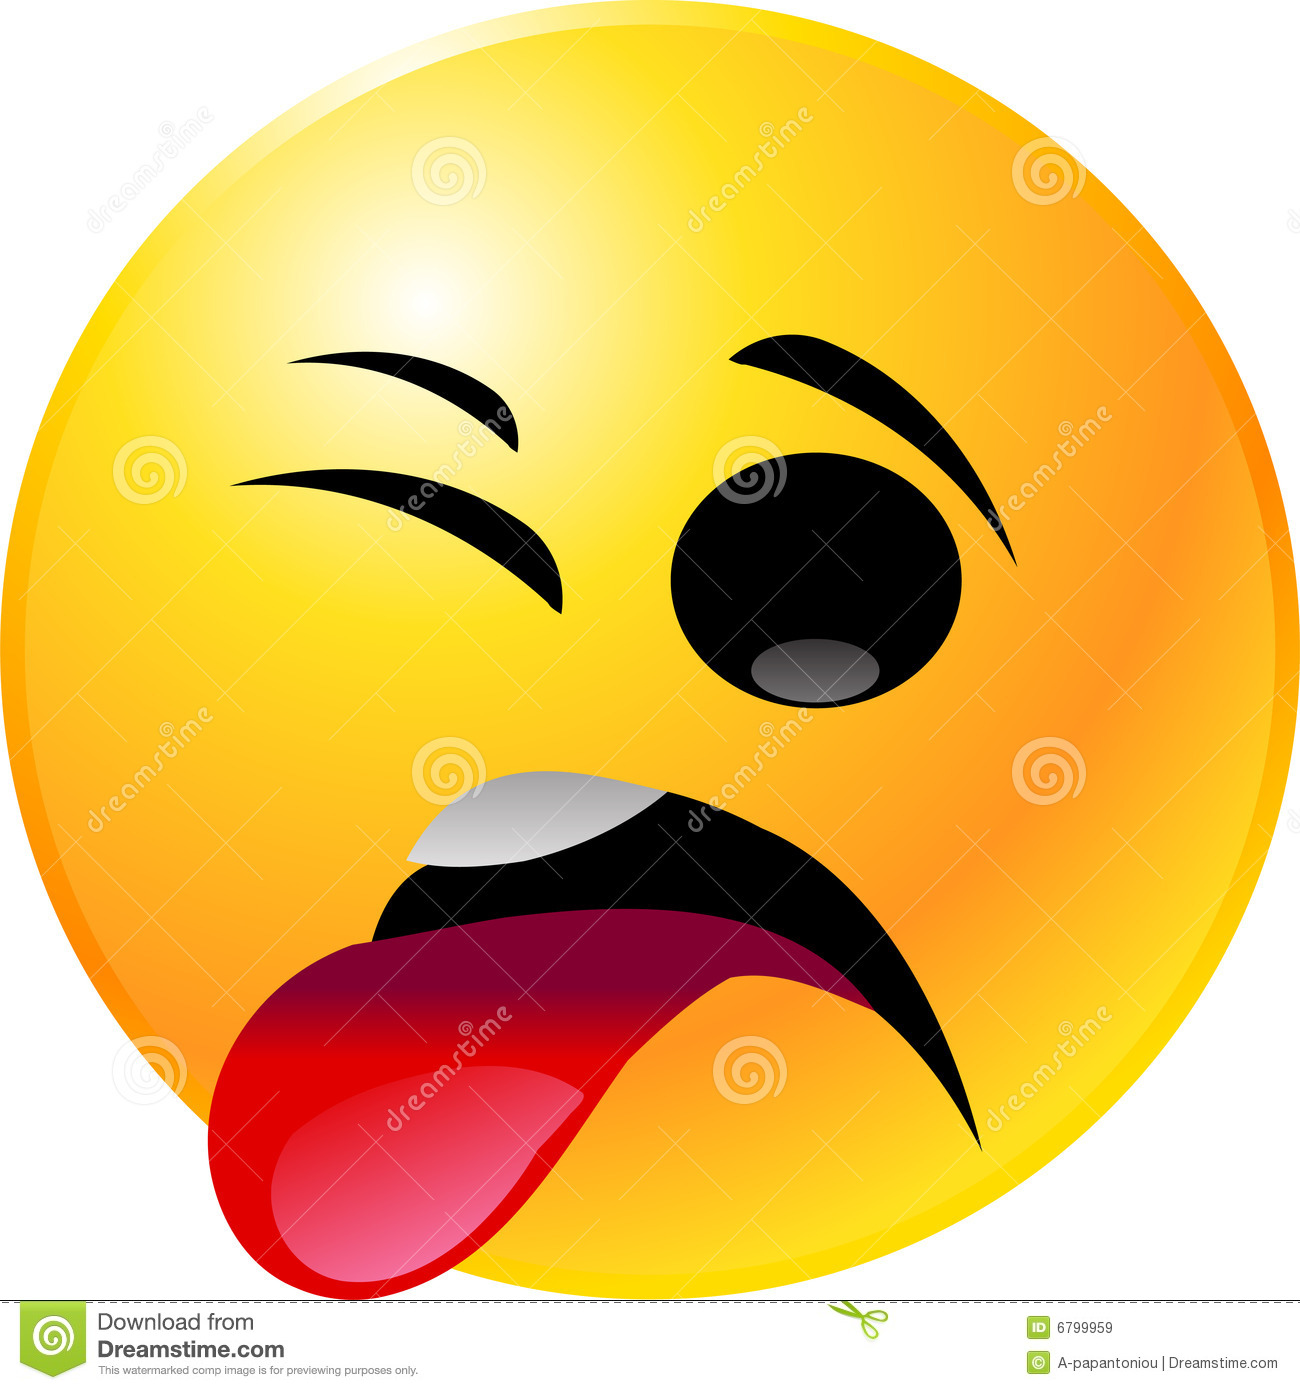 Emoticon Smiley Face Royalty Free Stock Images - Image: 6799959